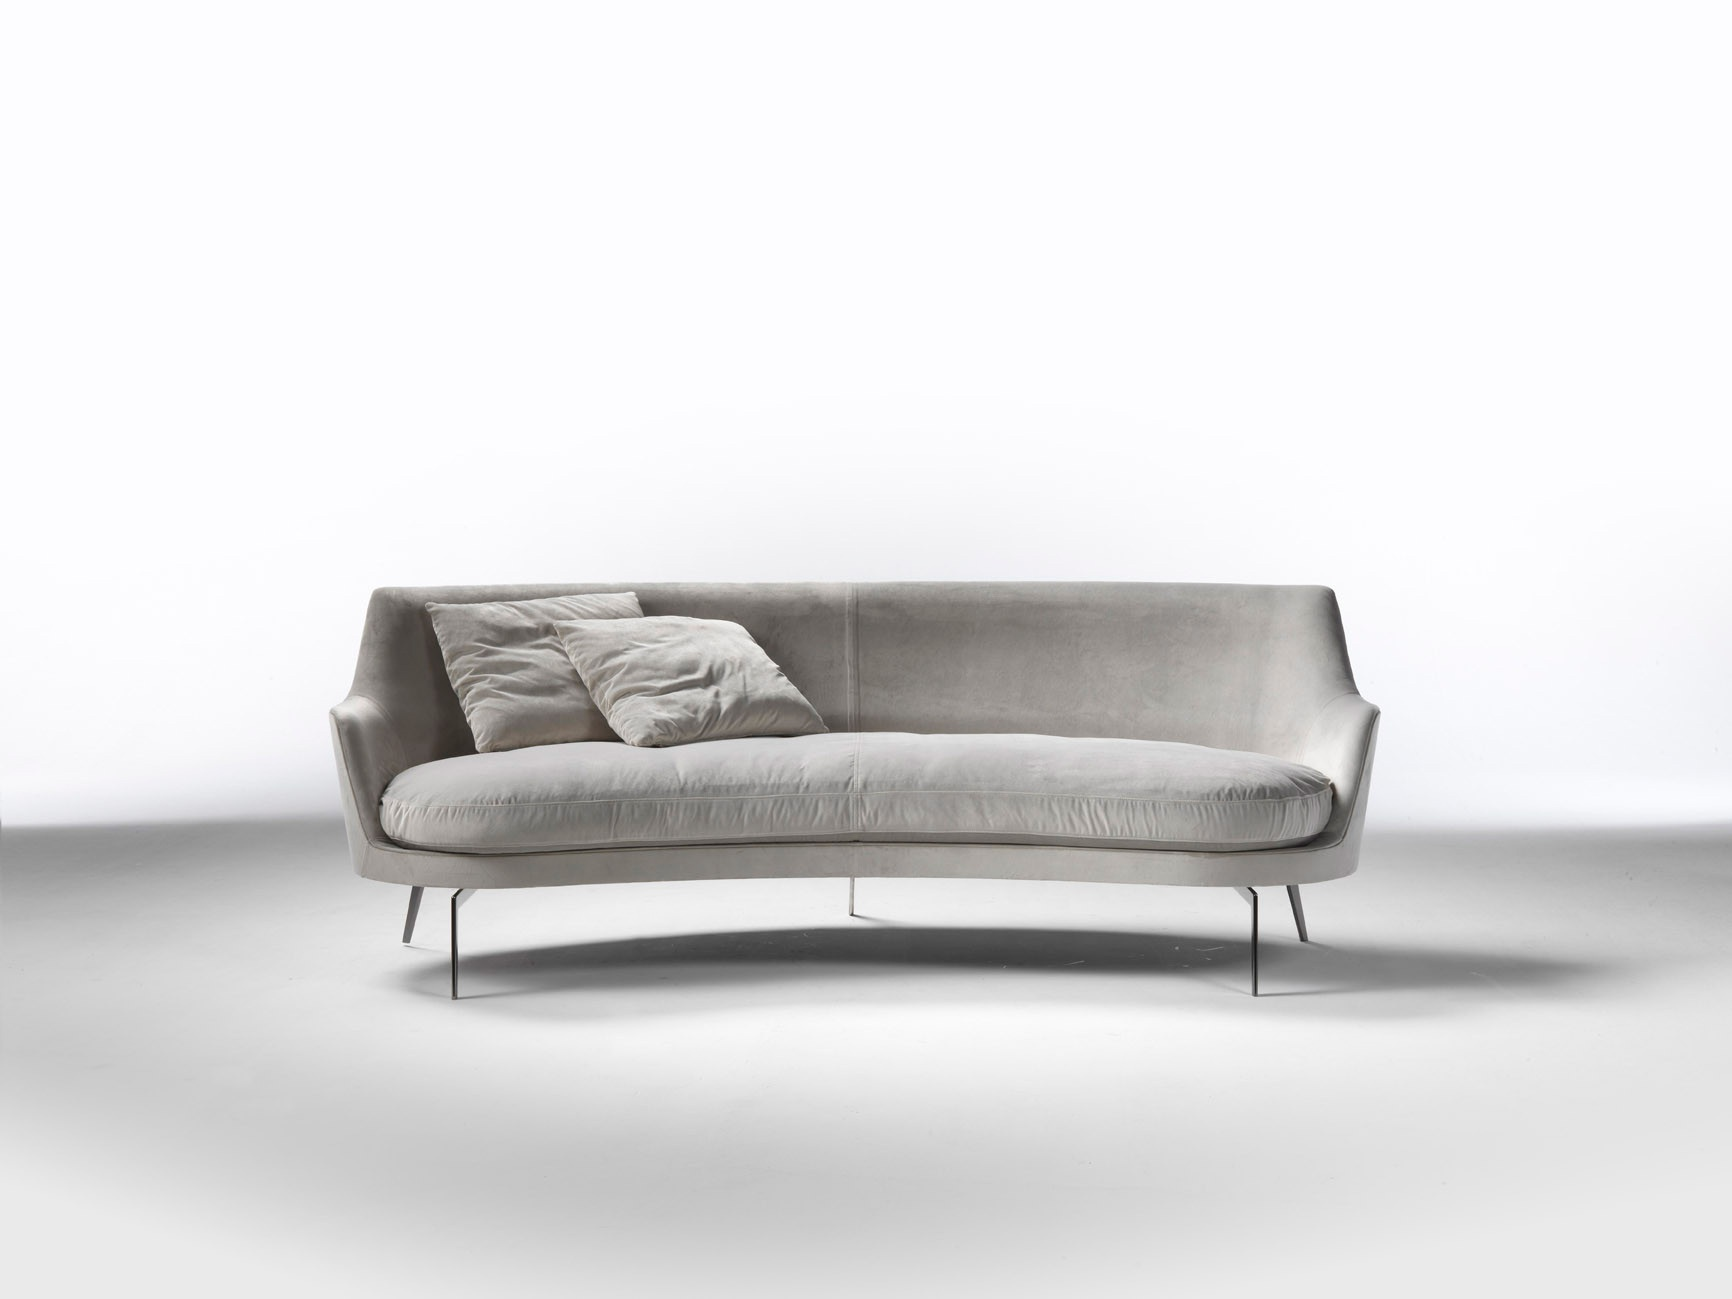 Curved Sofa With Metal Legs Guscio